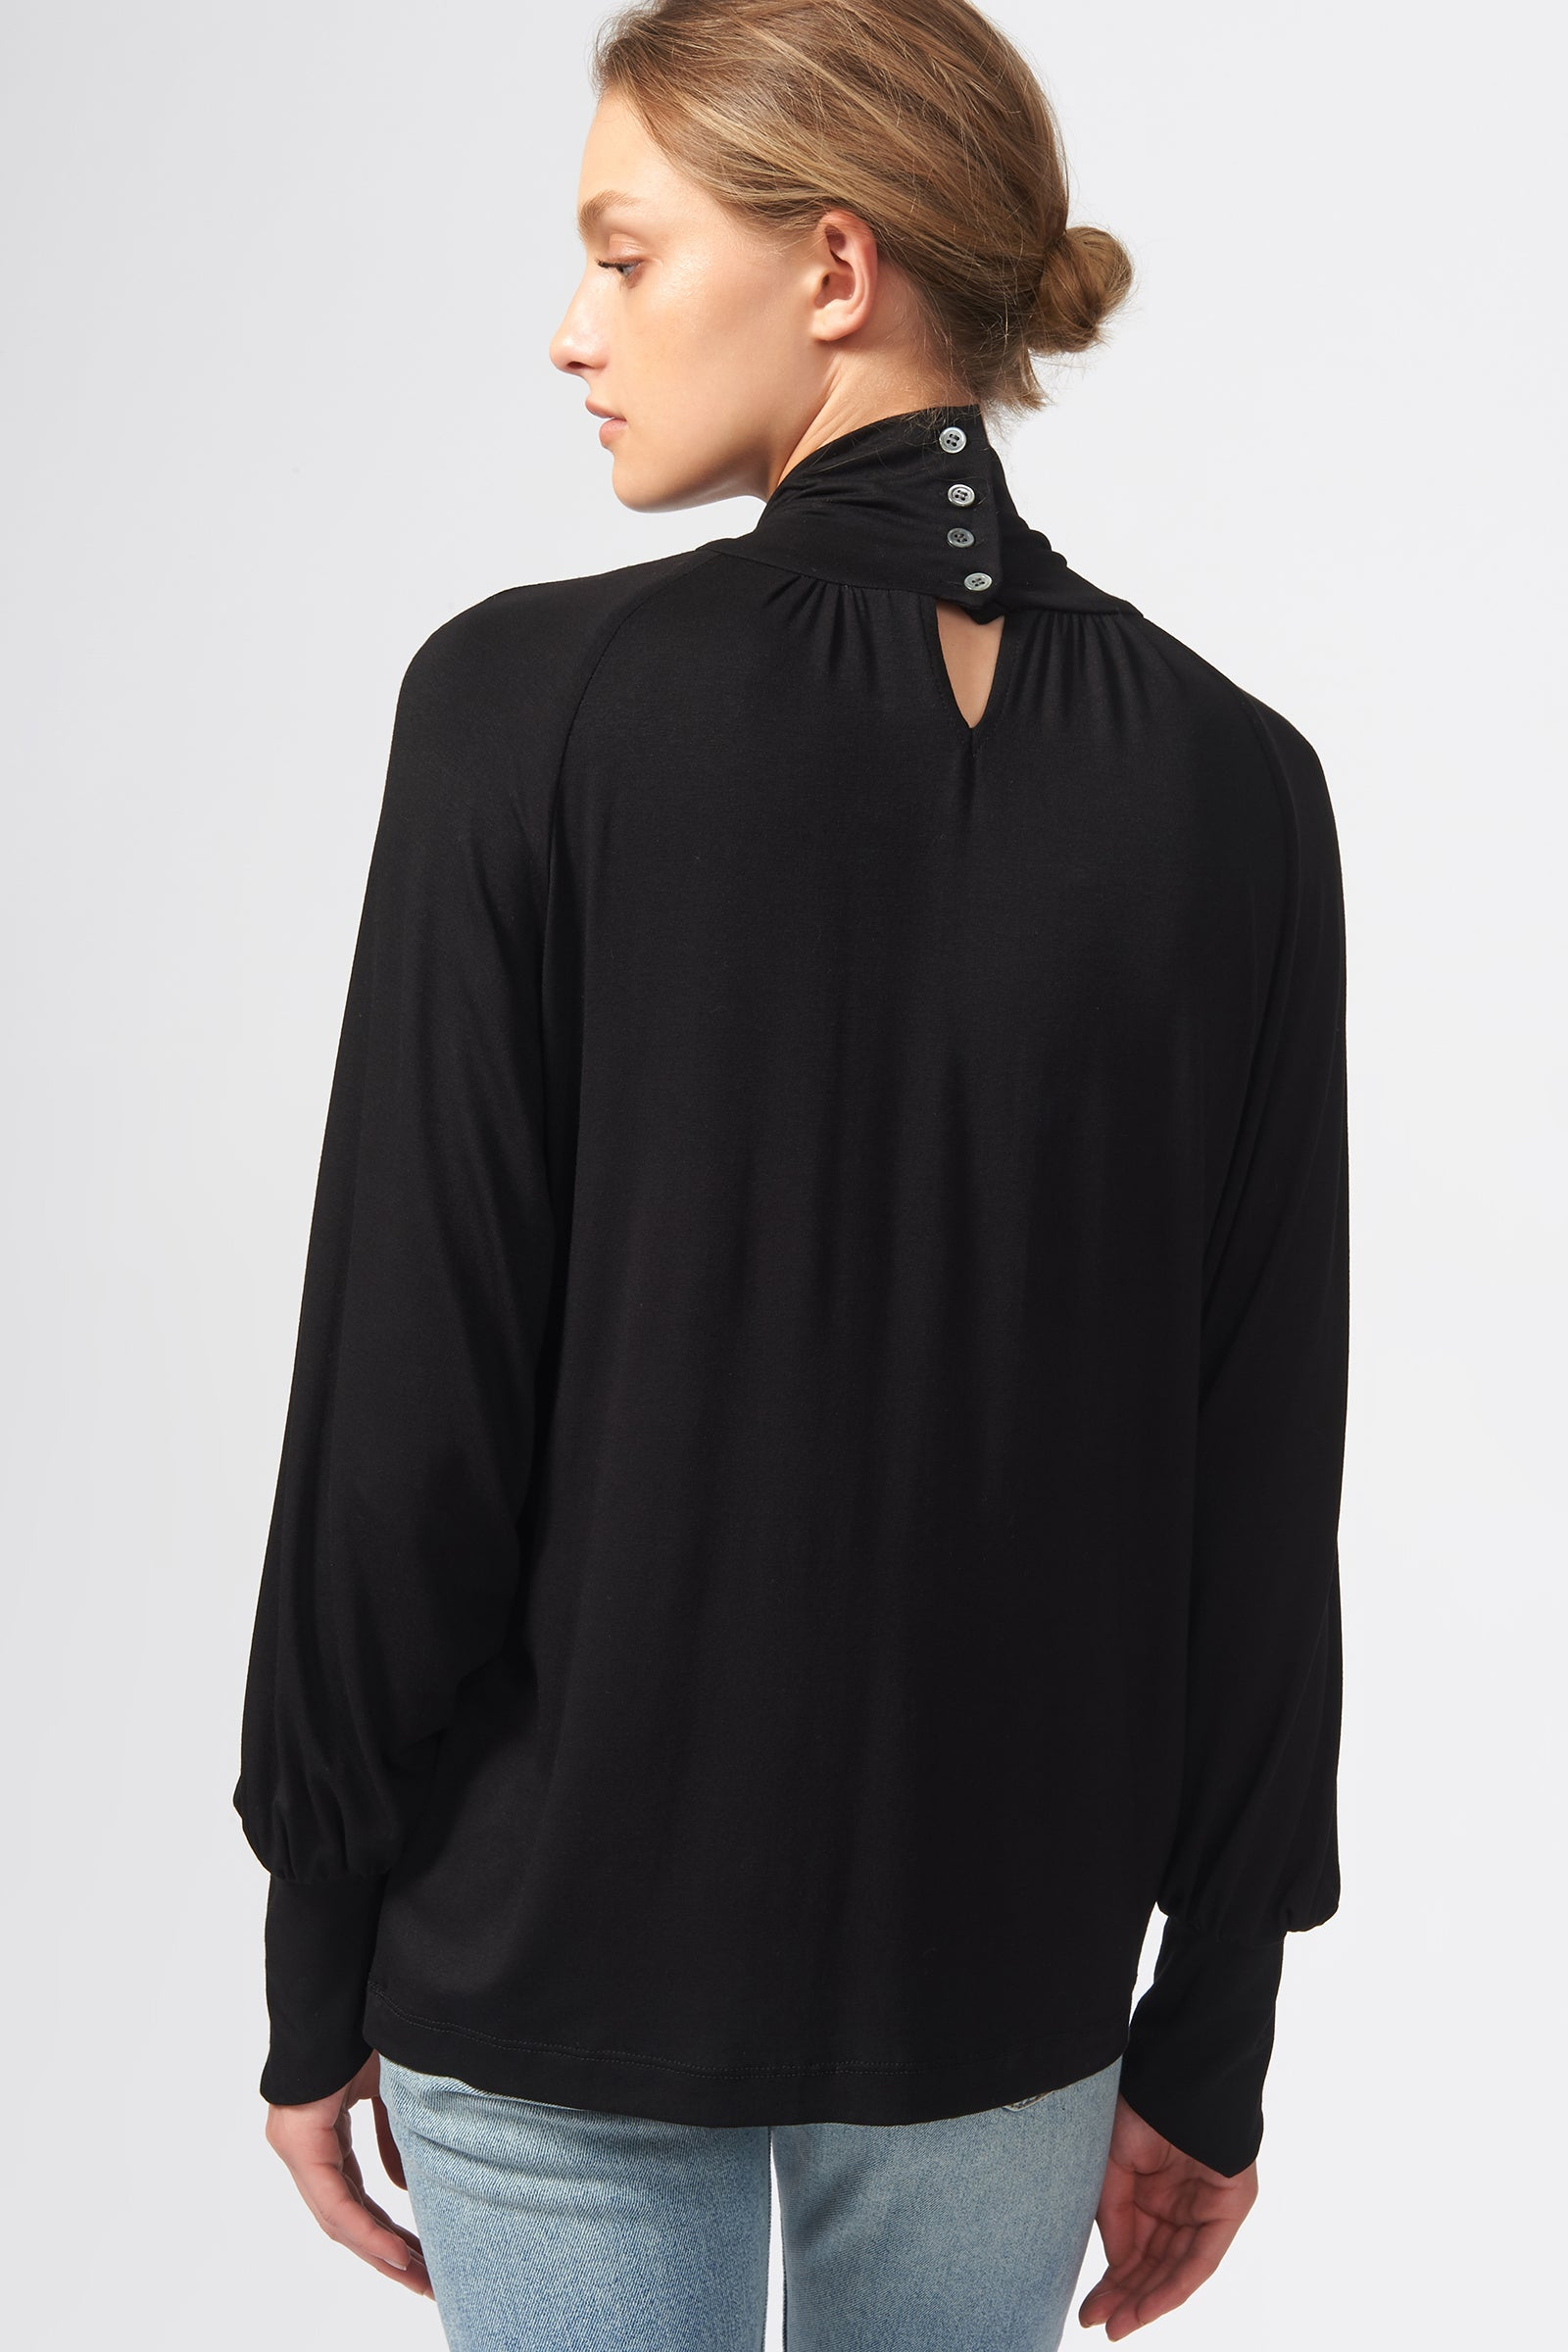 Kal Rieman Priestess Knit Blouse in Black on Model Back View